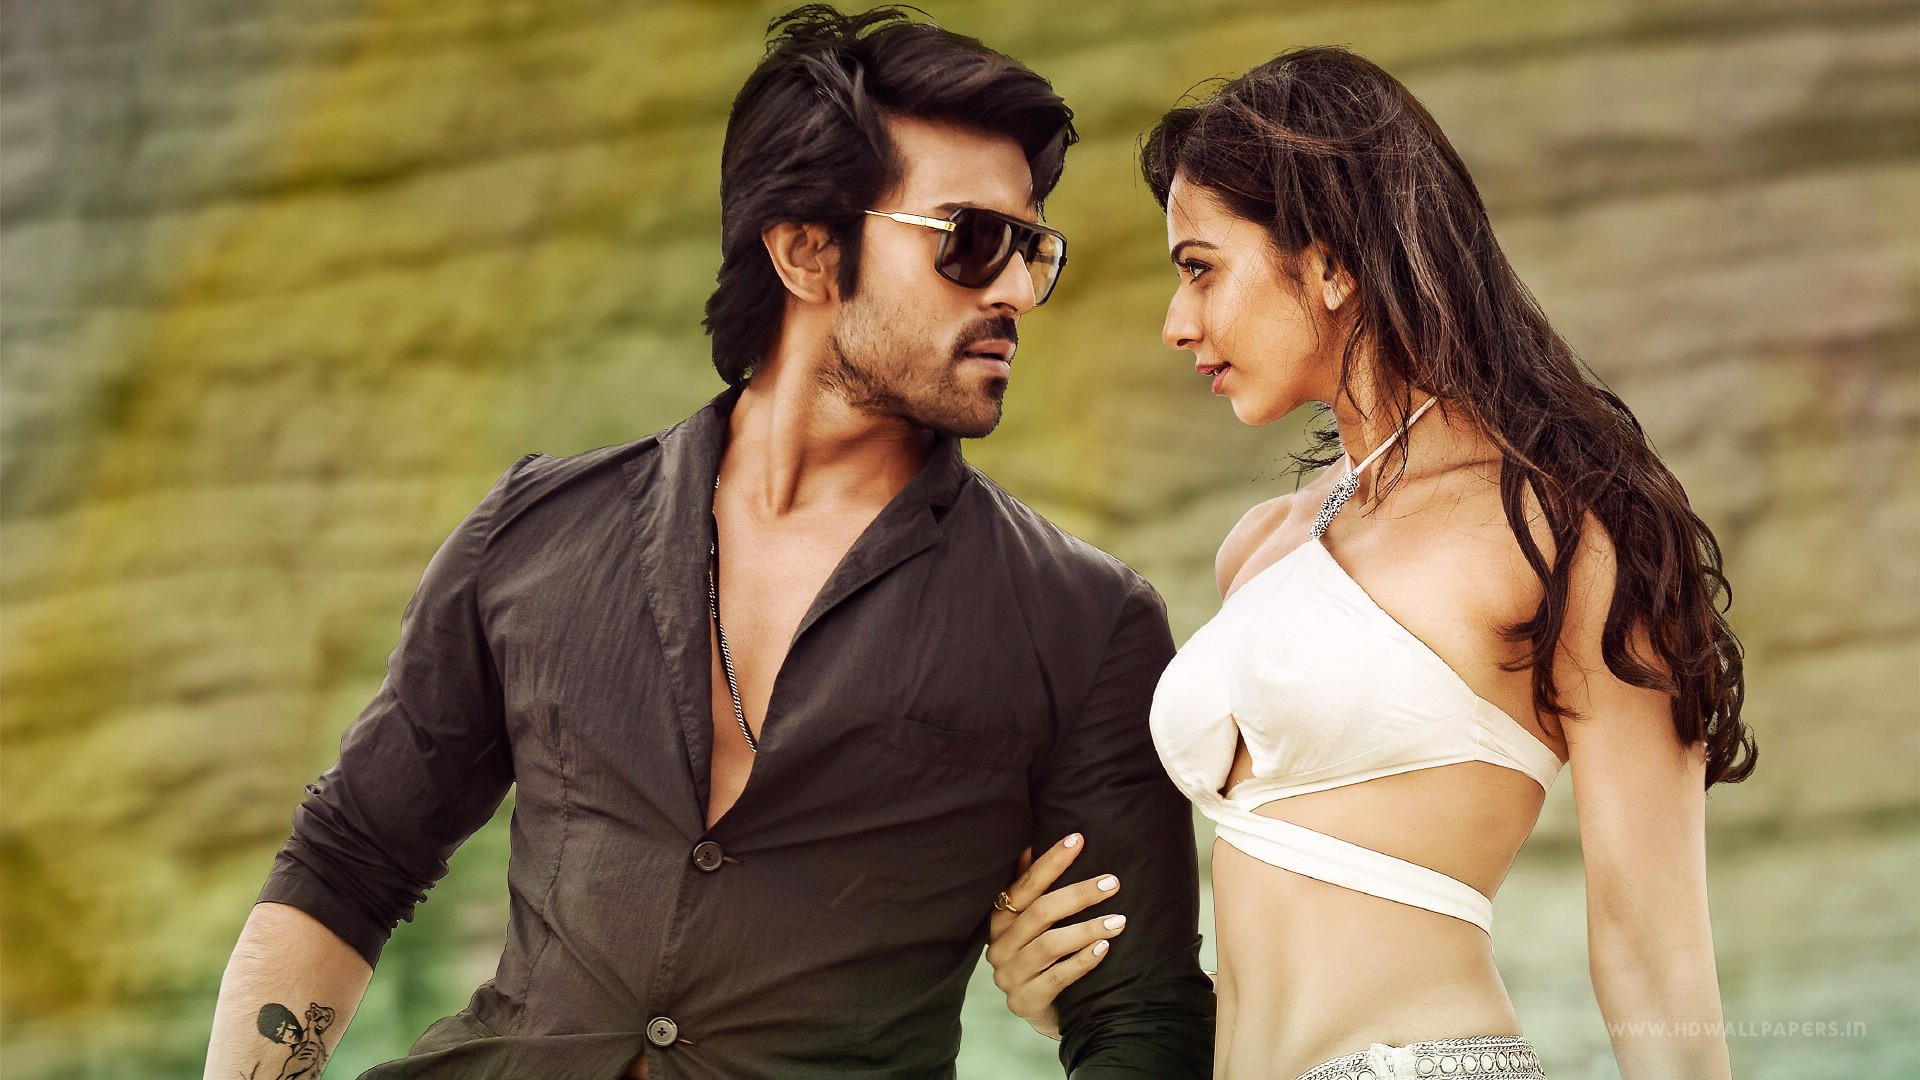 Cute Couple Anime Wallpaper For Android Ram Charan Rakul Preet Bruce Lee Wallpapers Hd